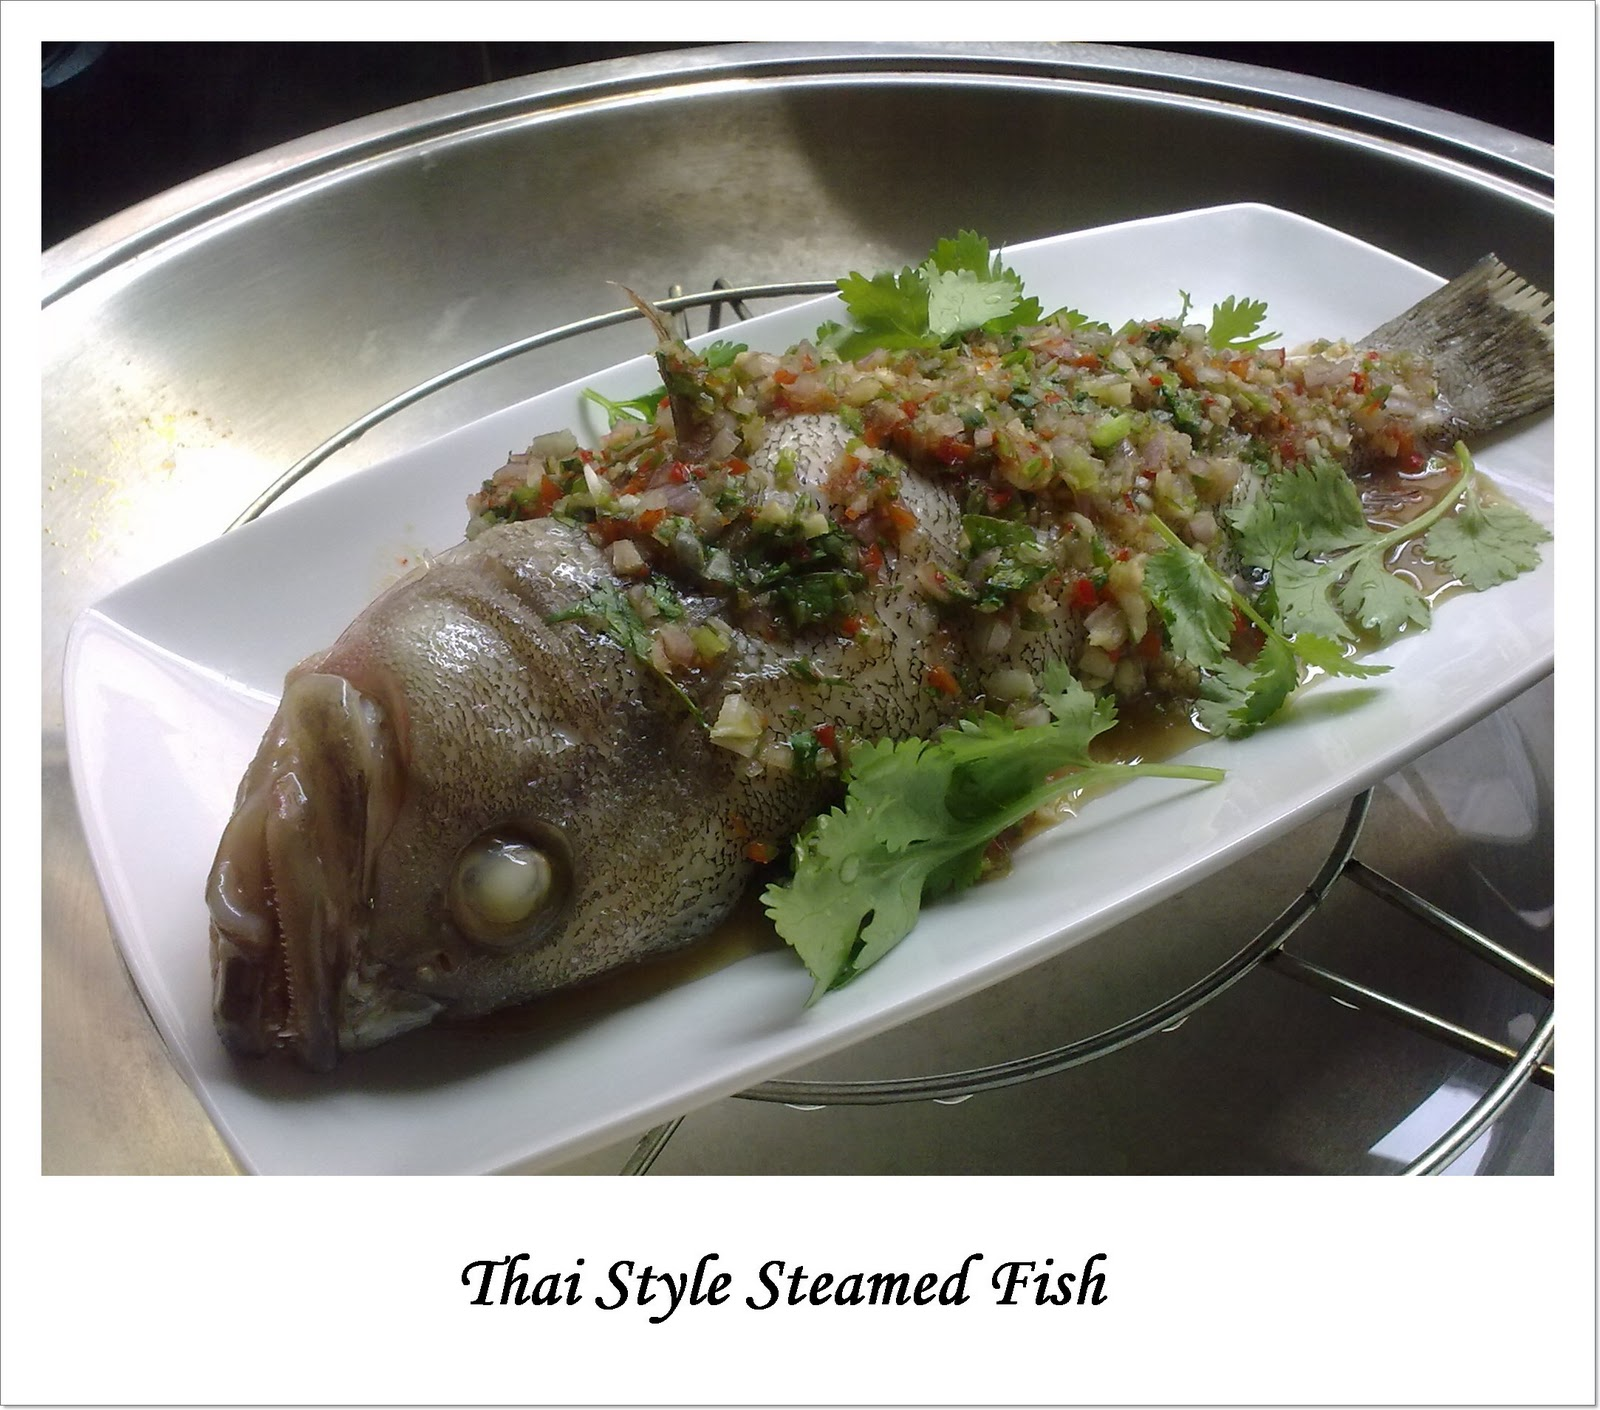 Home-cooked-ecstasy: Thai Style Steamed Fish